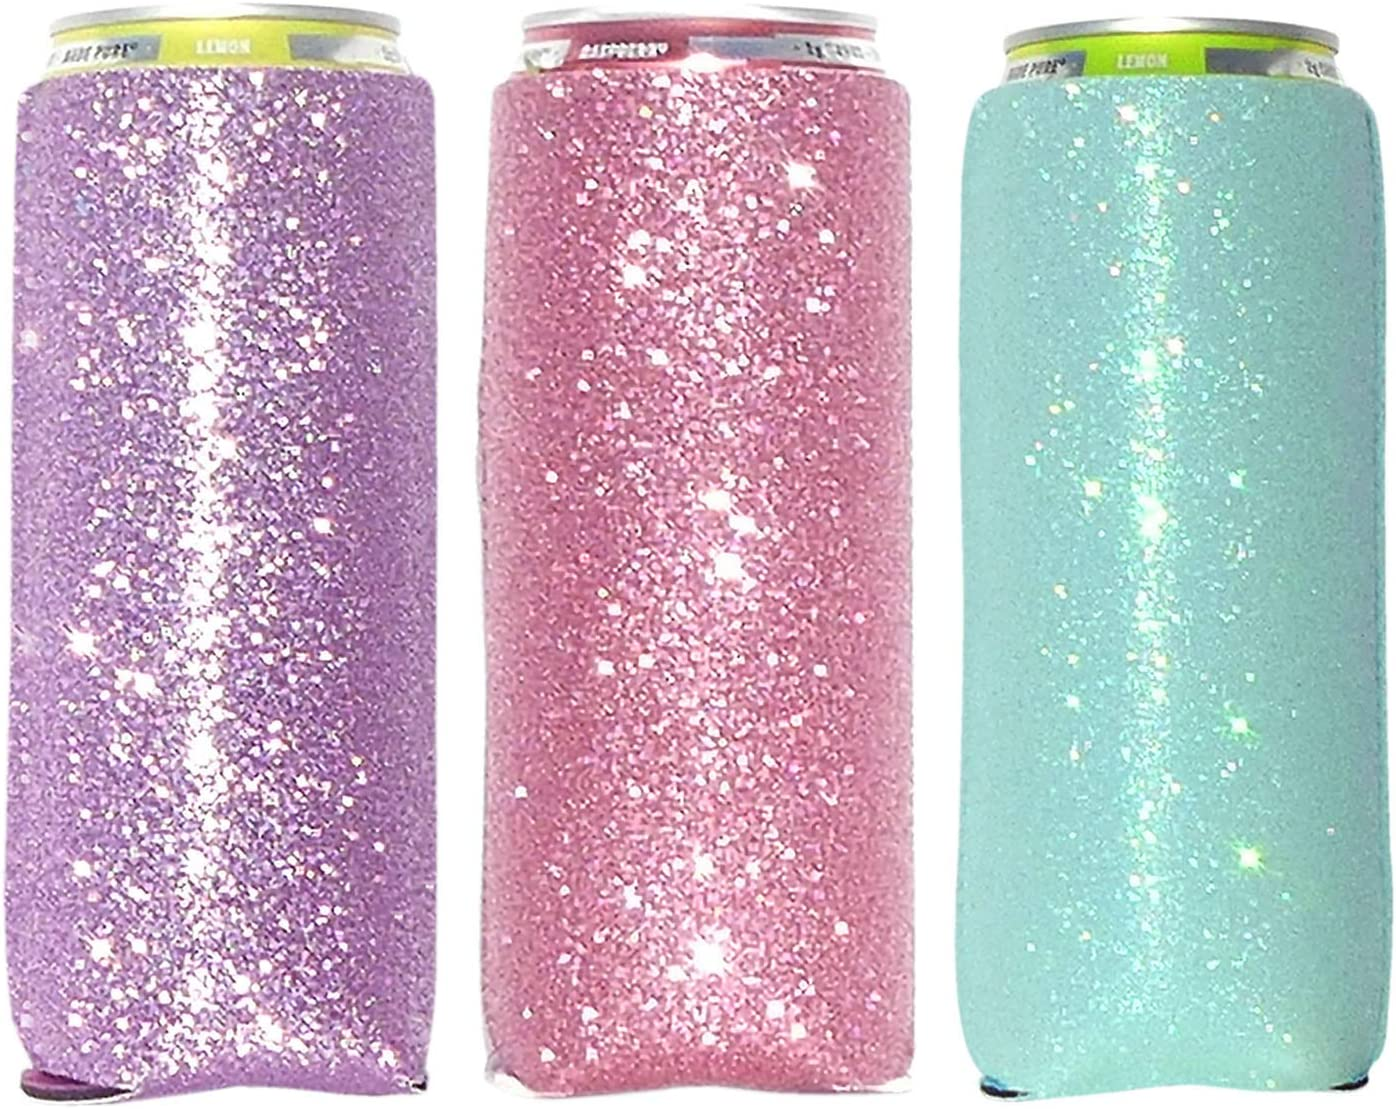 3 Pack- 35% OFF 12 oz Slim Glitter Skinny Can New products world's highest quality popular Cooler Hold Insulated